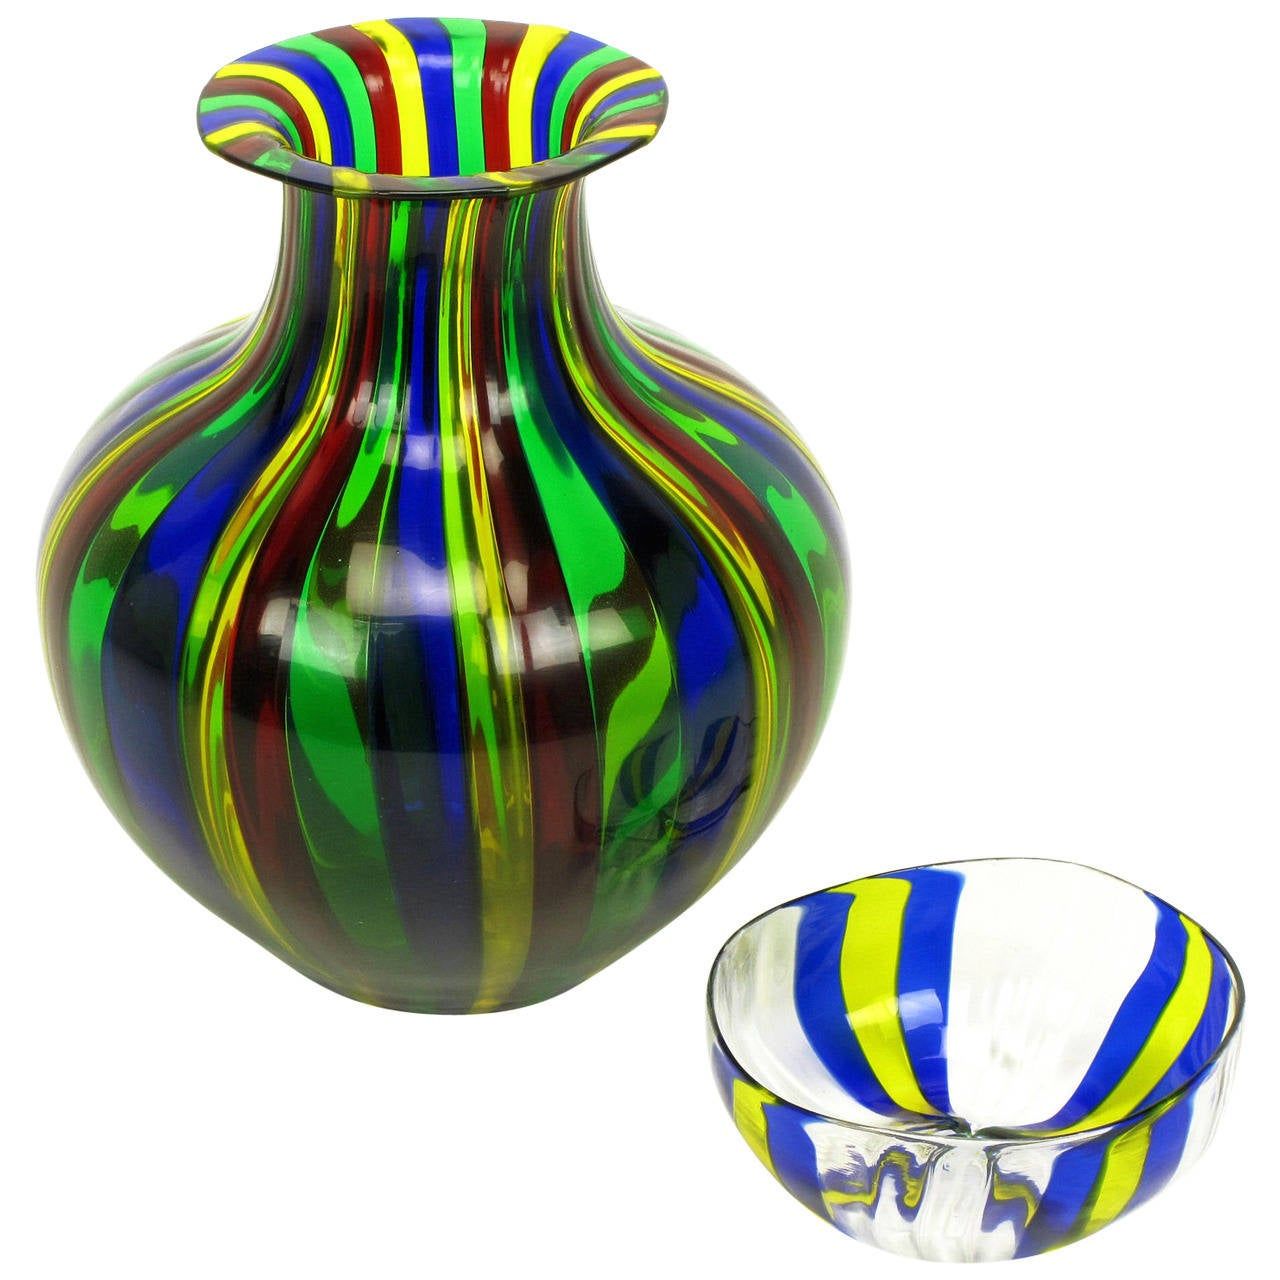 Italian handblown art glass vase with bowl by oggetti for sale at italian handblown art glass vase with bowl by oggetti for sale reviewsmspy